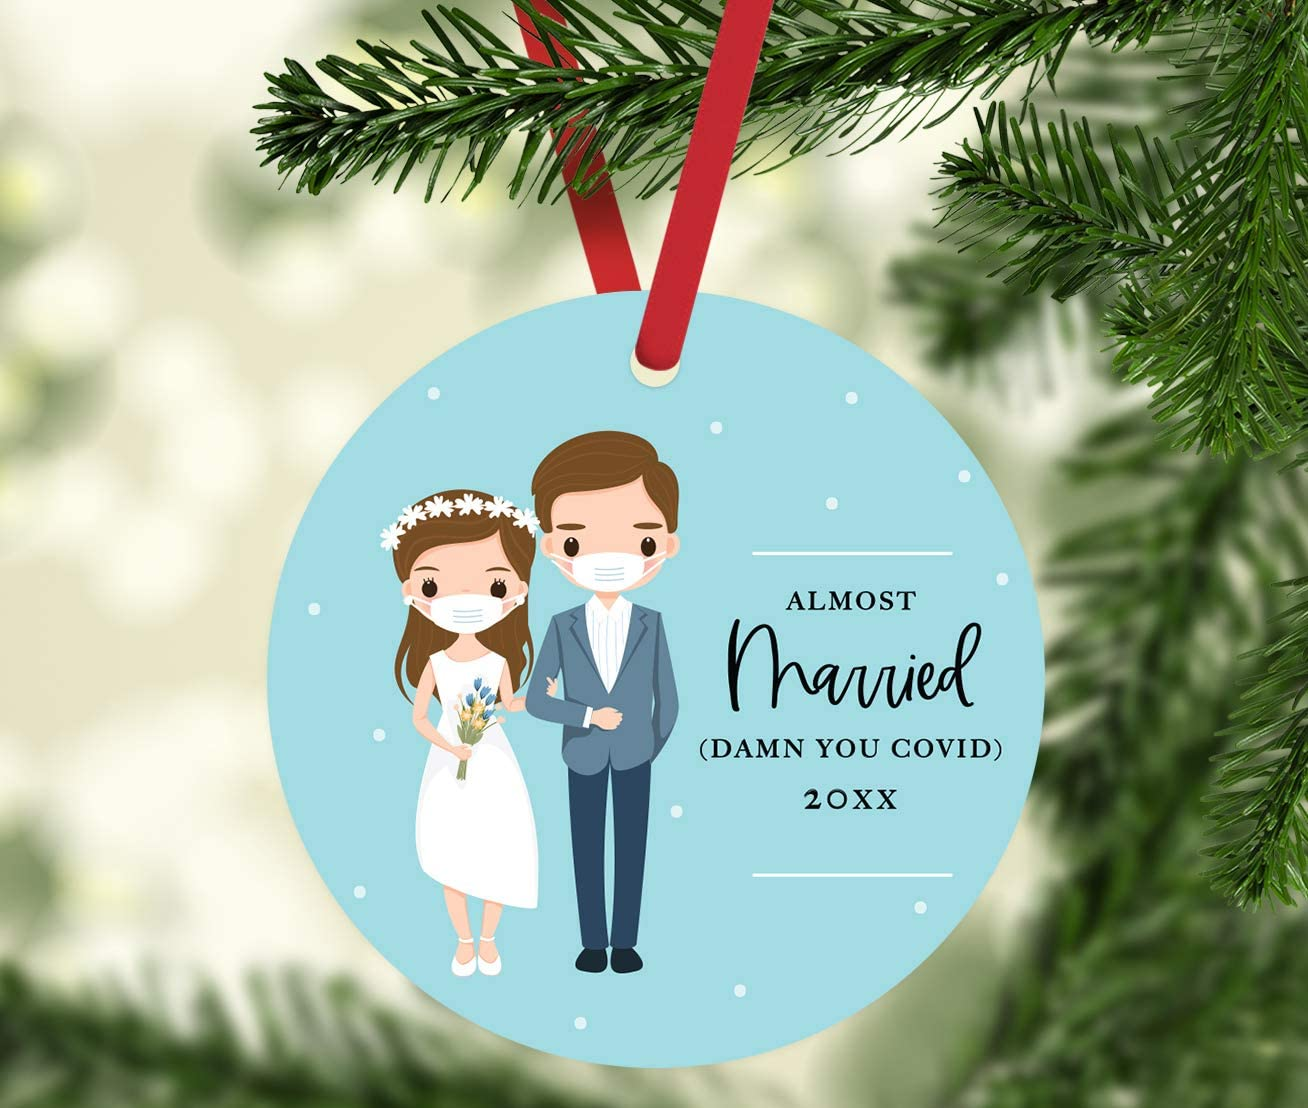 Almost Married - Damn You Covid - Funny Just Married Christmas Ornament in Face Masks